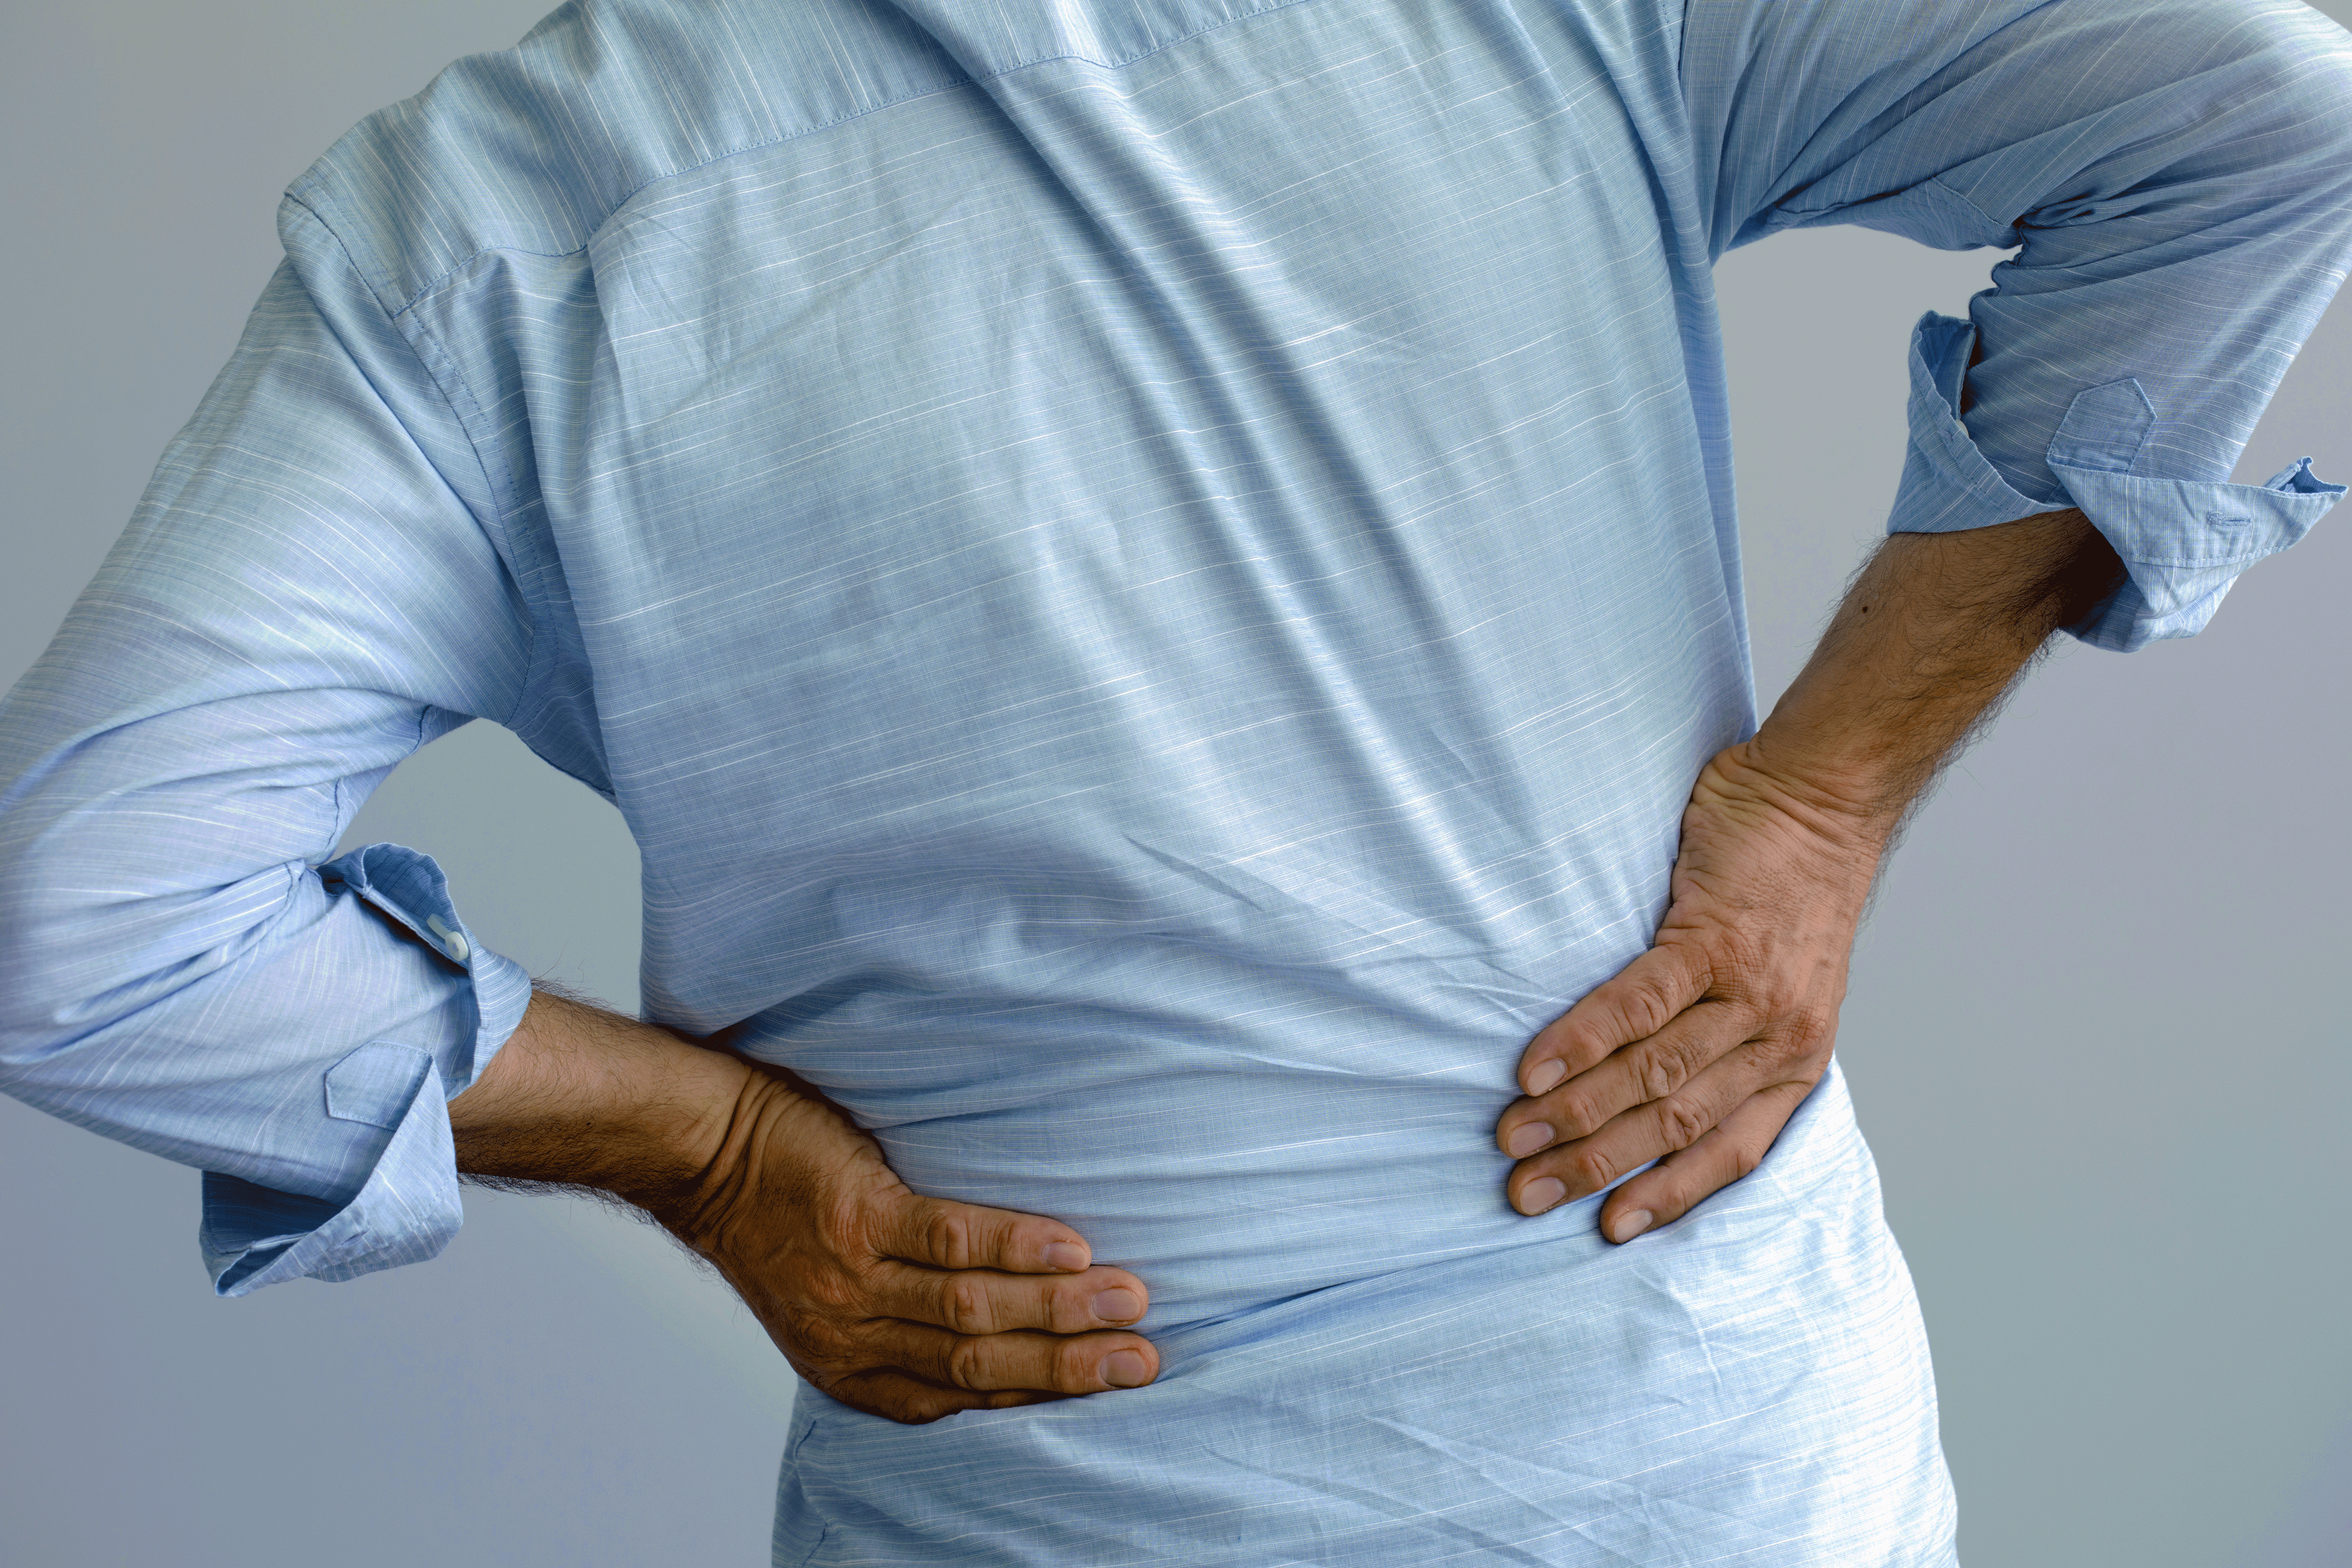 When you visit a back specialist in New Jersey, you expect pain relief. But there are other surprising benefits of seeing a back doctor. Here are 8 additional perks.